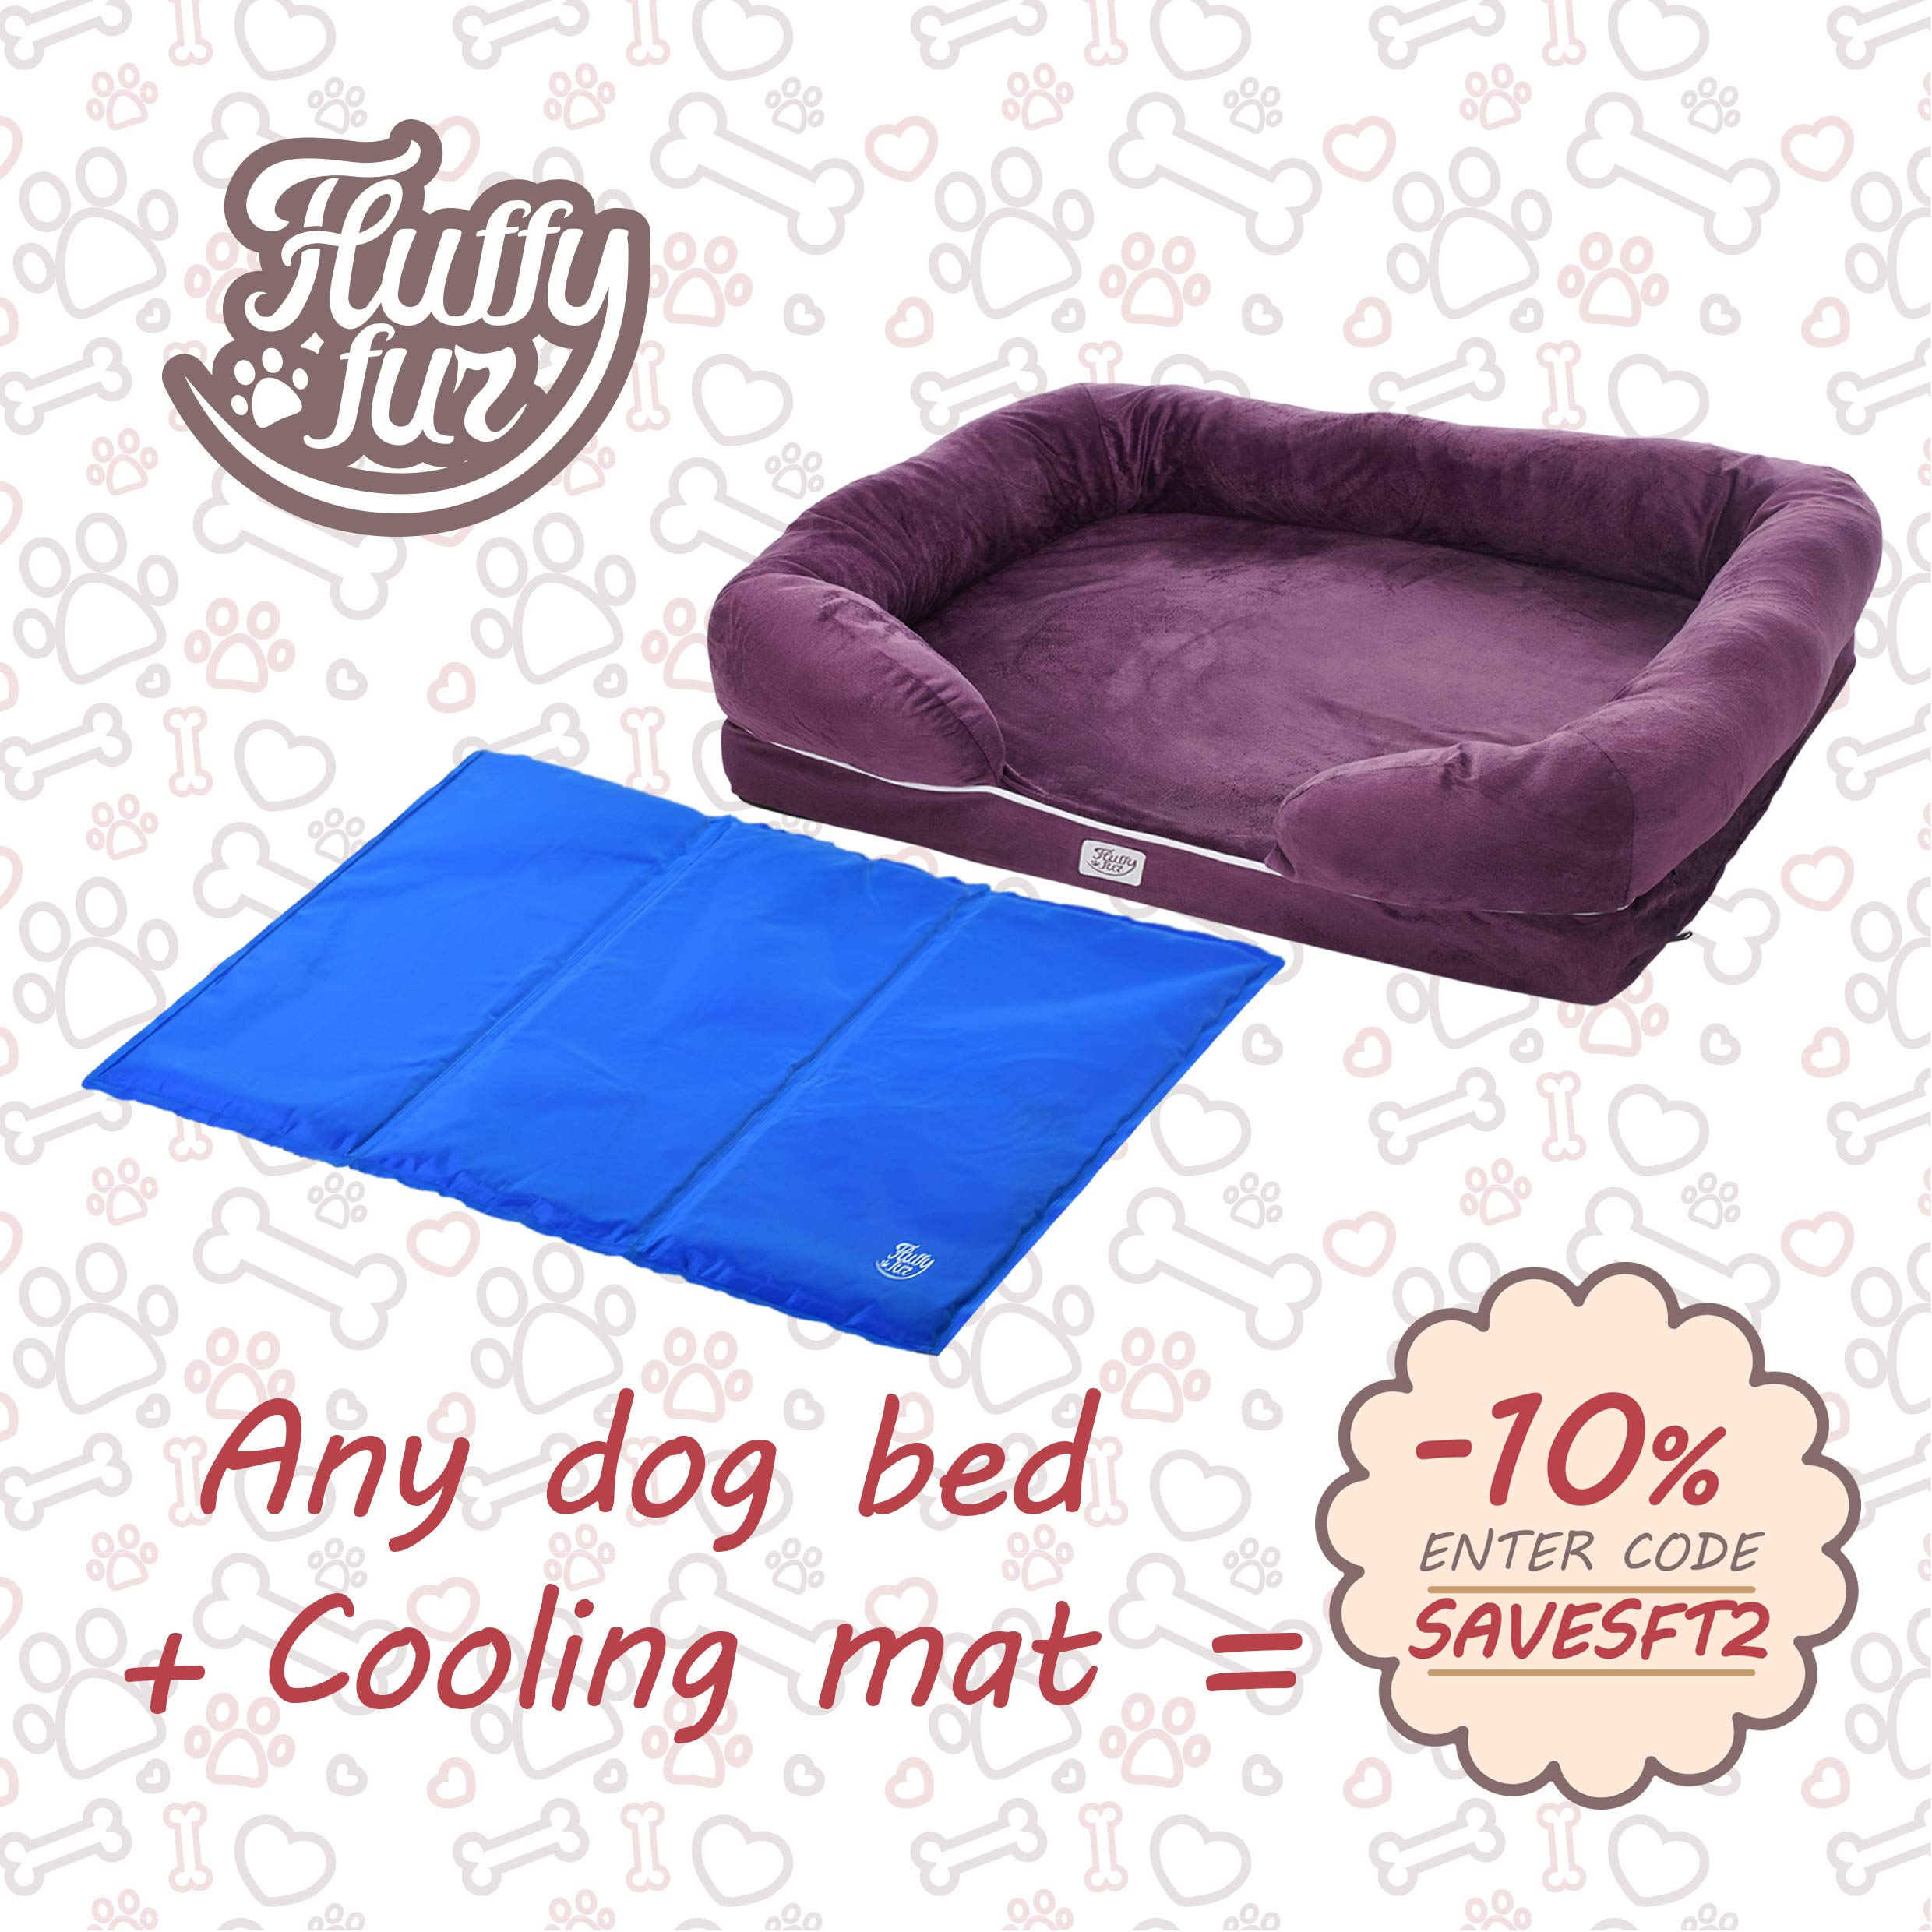 Dog Self Cooling Mat - Best Puppy Cold Gel Pad for Bed Crate Kennel Car Floor Blanket - Premium Waterproof Pet Cool Mat for Sleeping (S,M,L Sizes) (S)